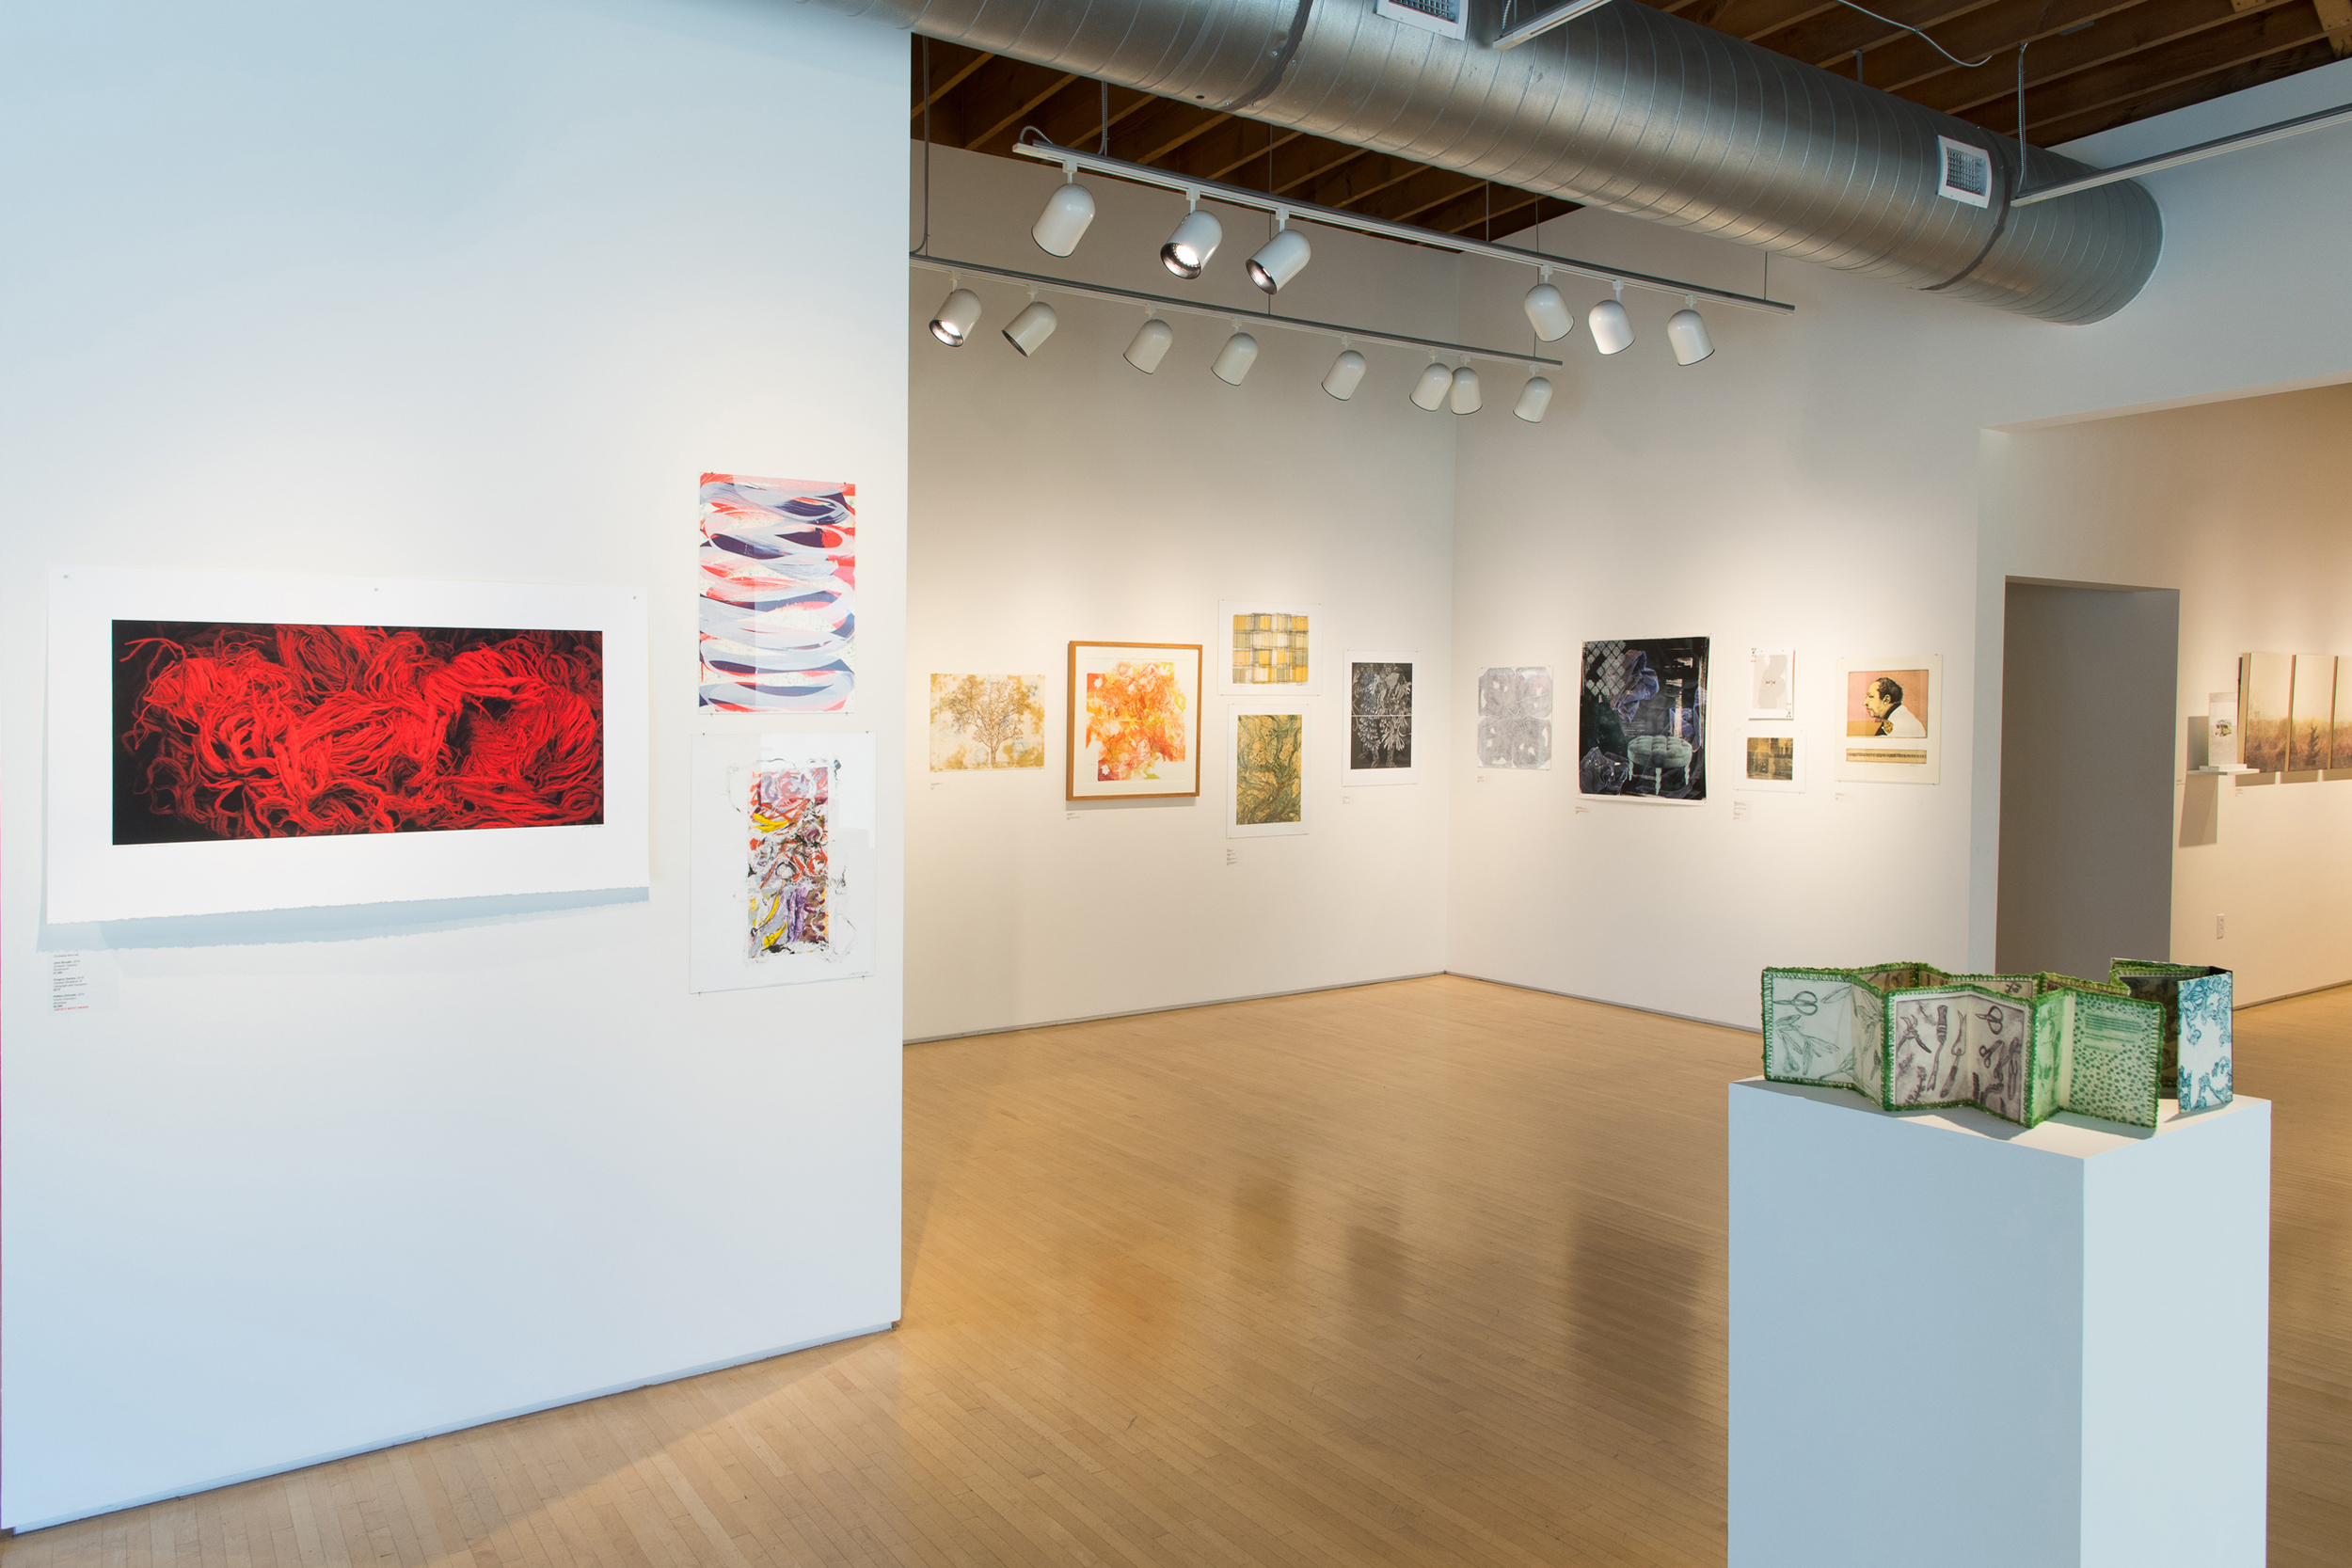 Highpoint PrintmakingStand Out Prints Exhibit180927a0263.JPG